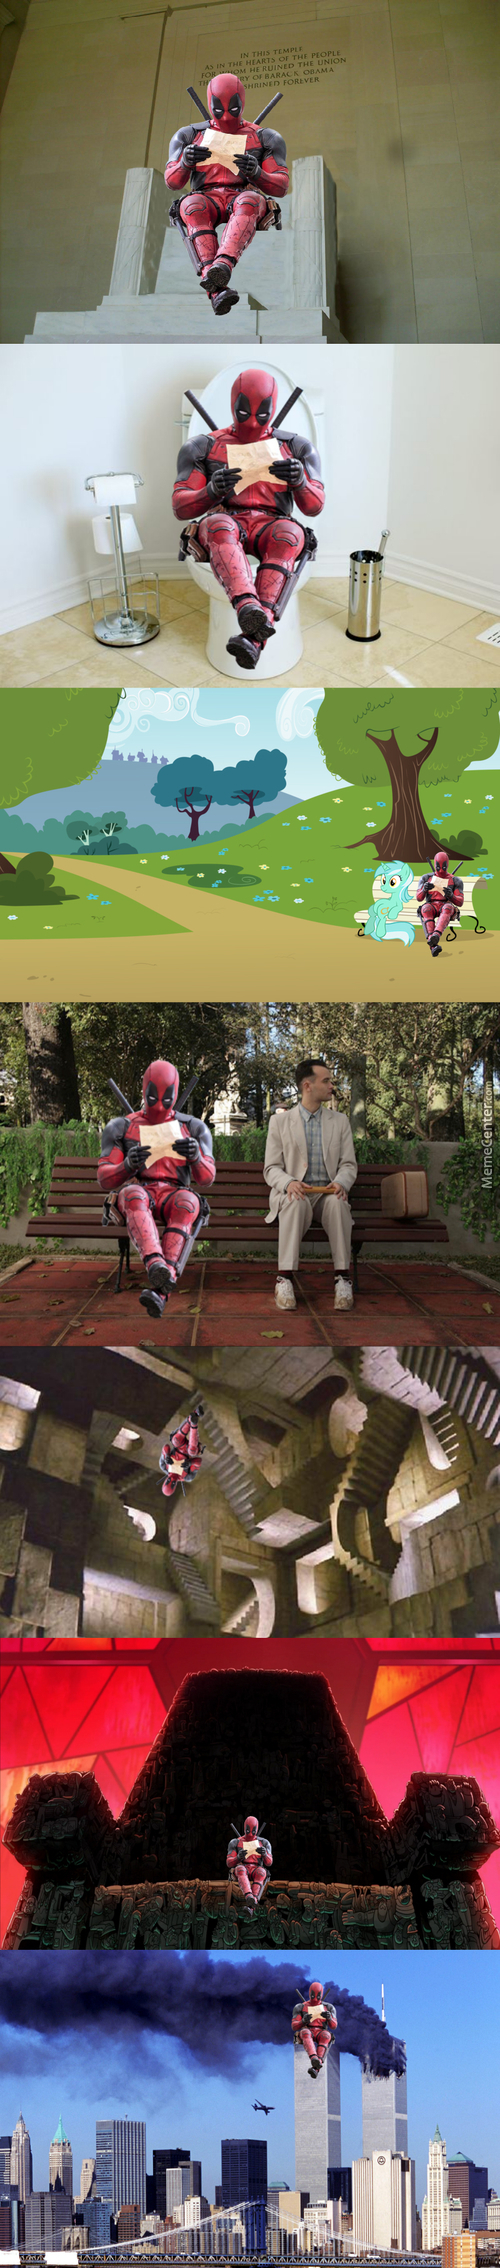 Just Another Deadpool Photoshop Compilation